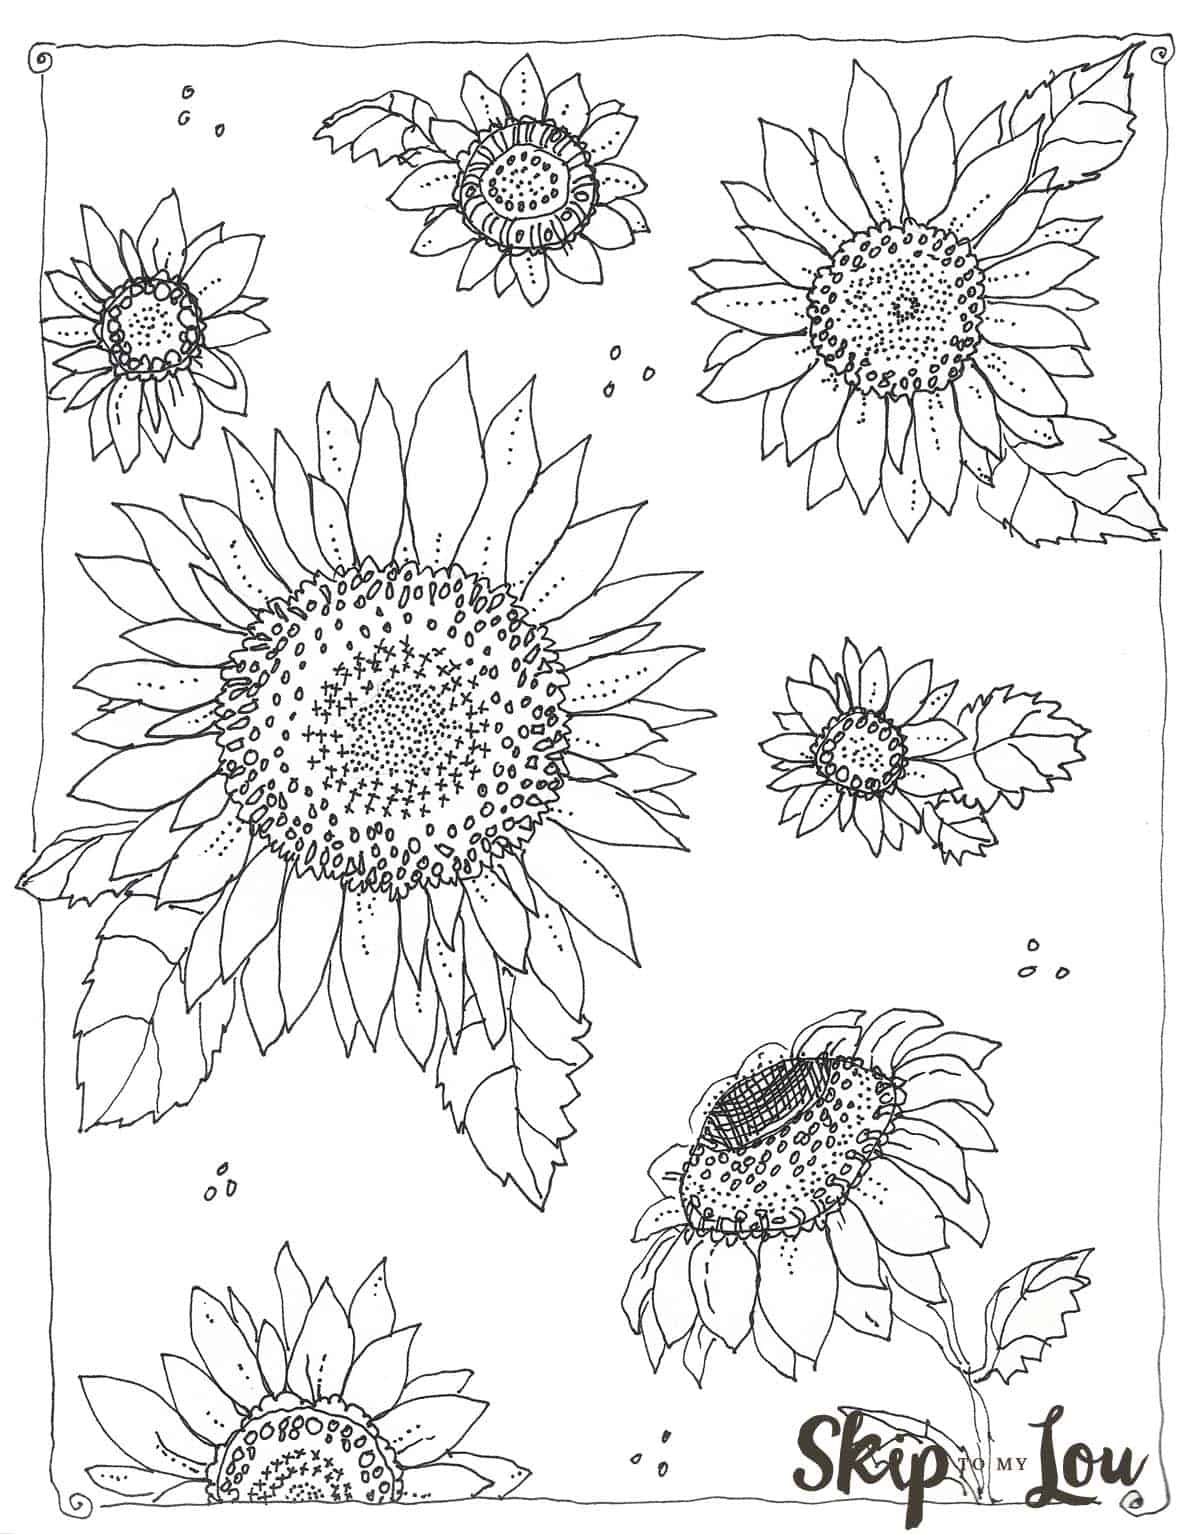 Kansas Day Sunflower Coloring Page